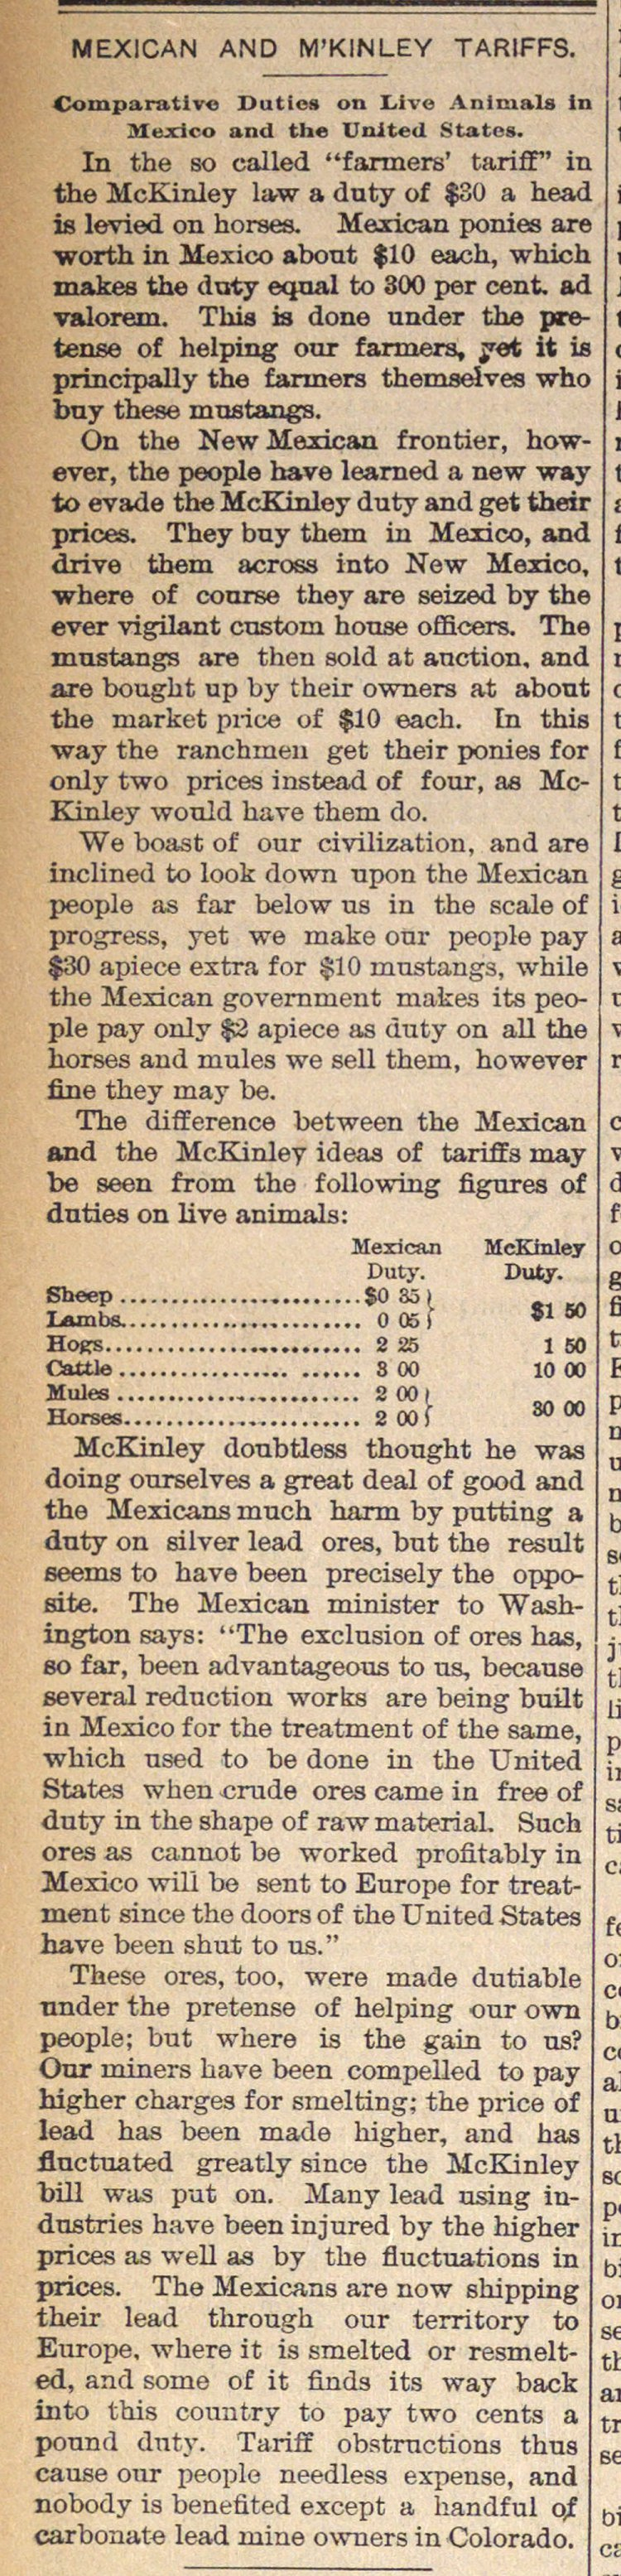 Mexican And M'kinley Tariffs image